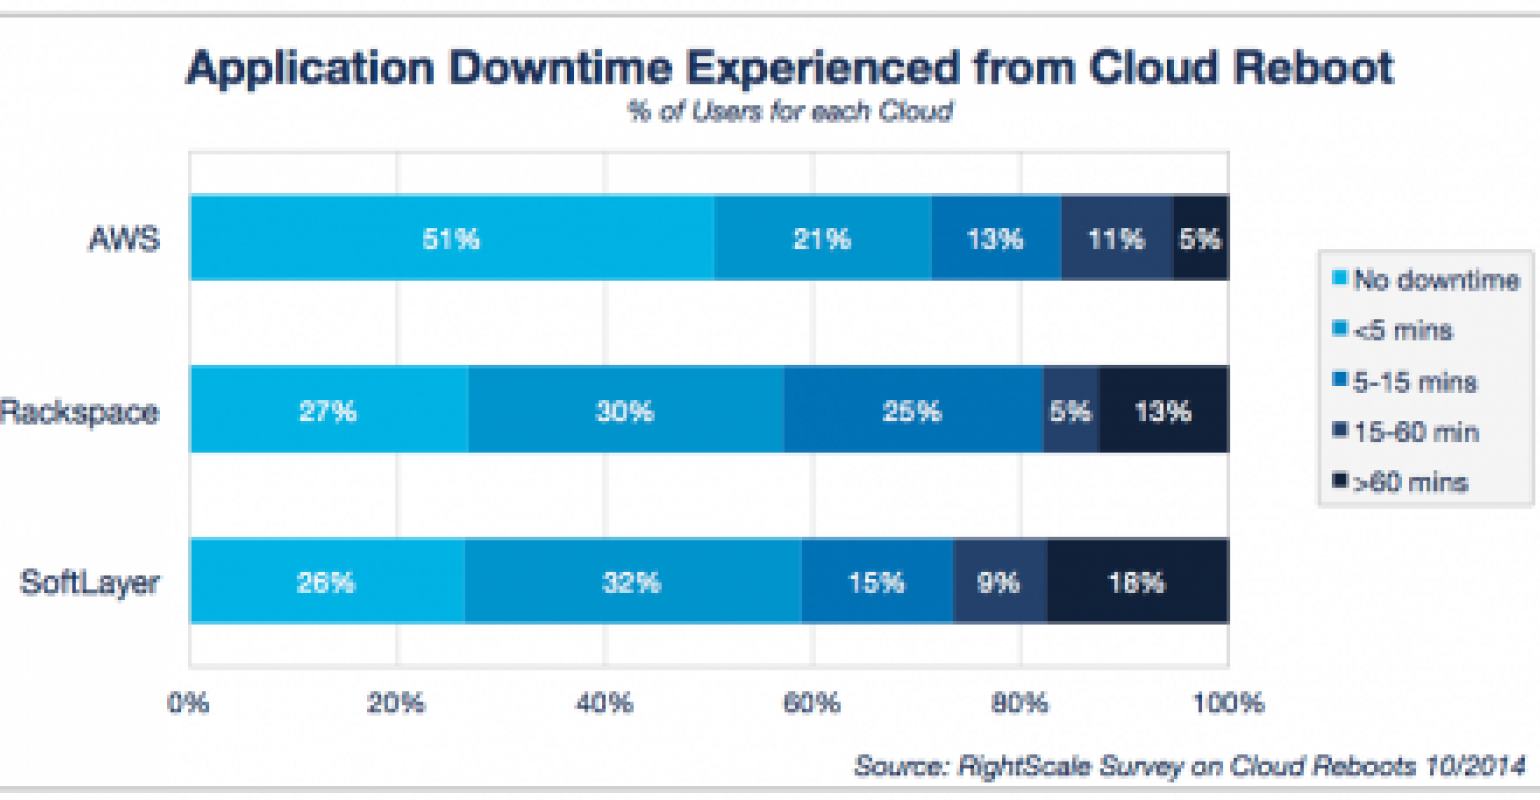 Report: AWS Users Weathered Cloud Reboot Better than